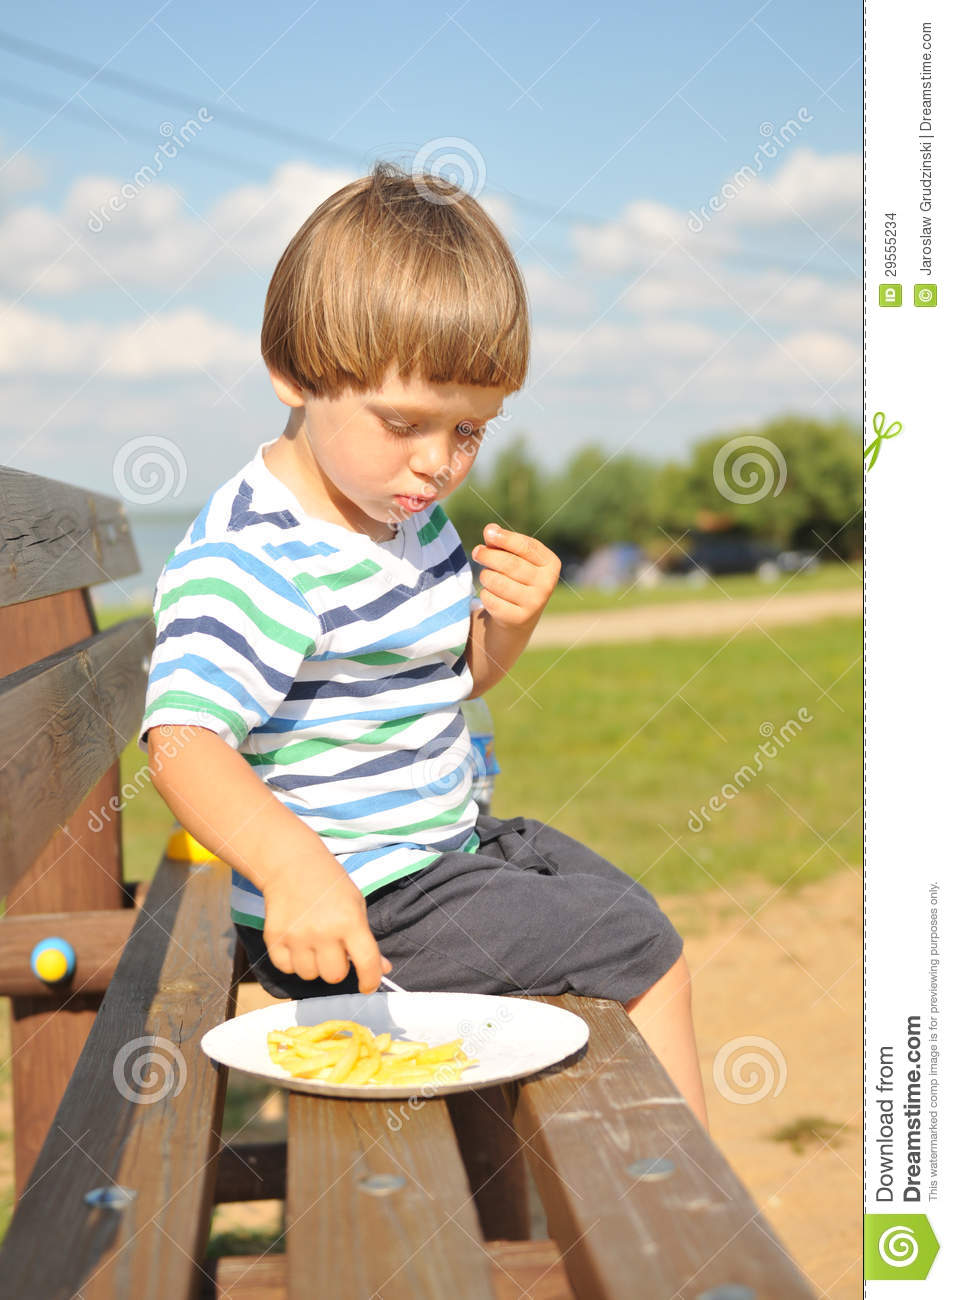 Little boy eating french fries